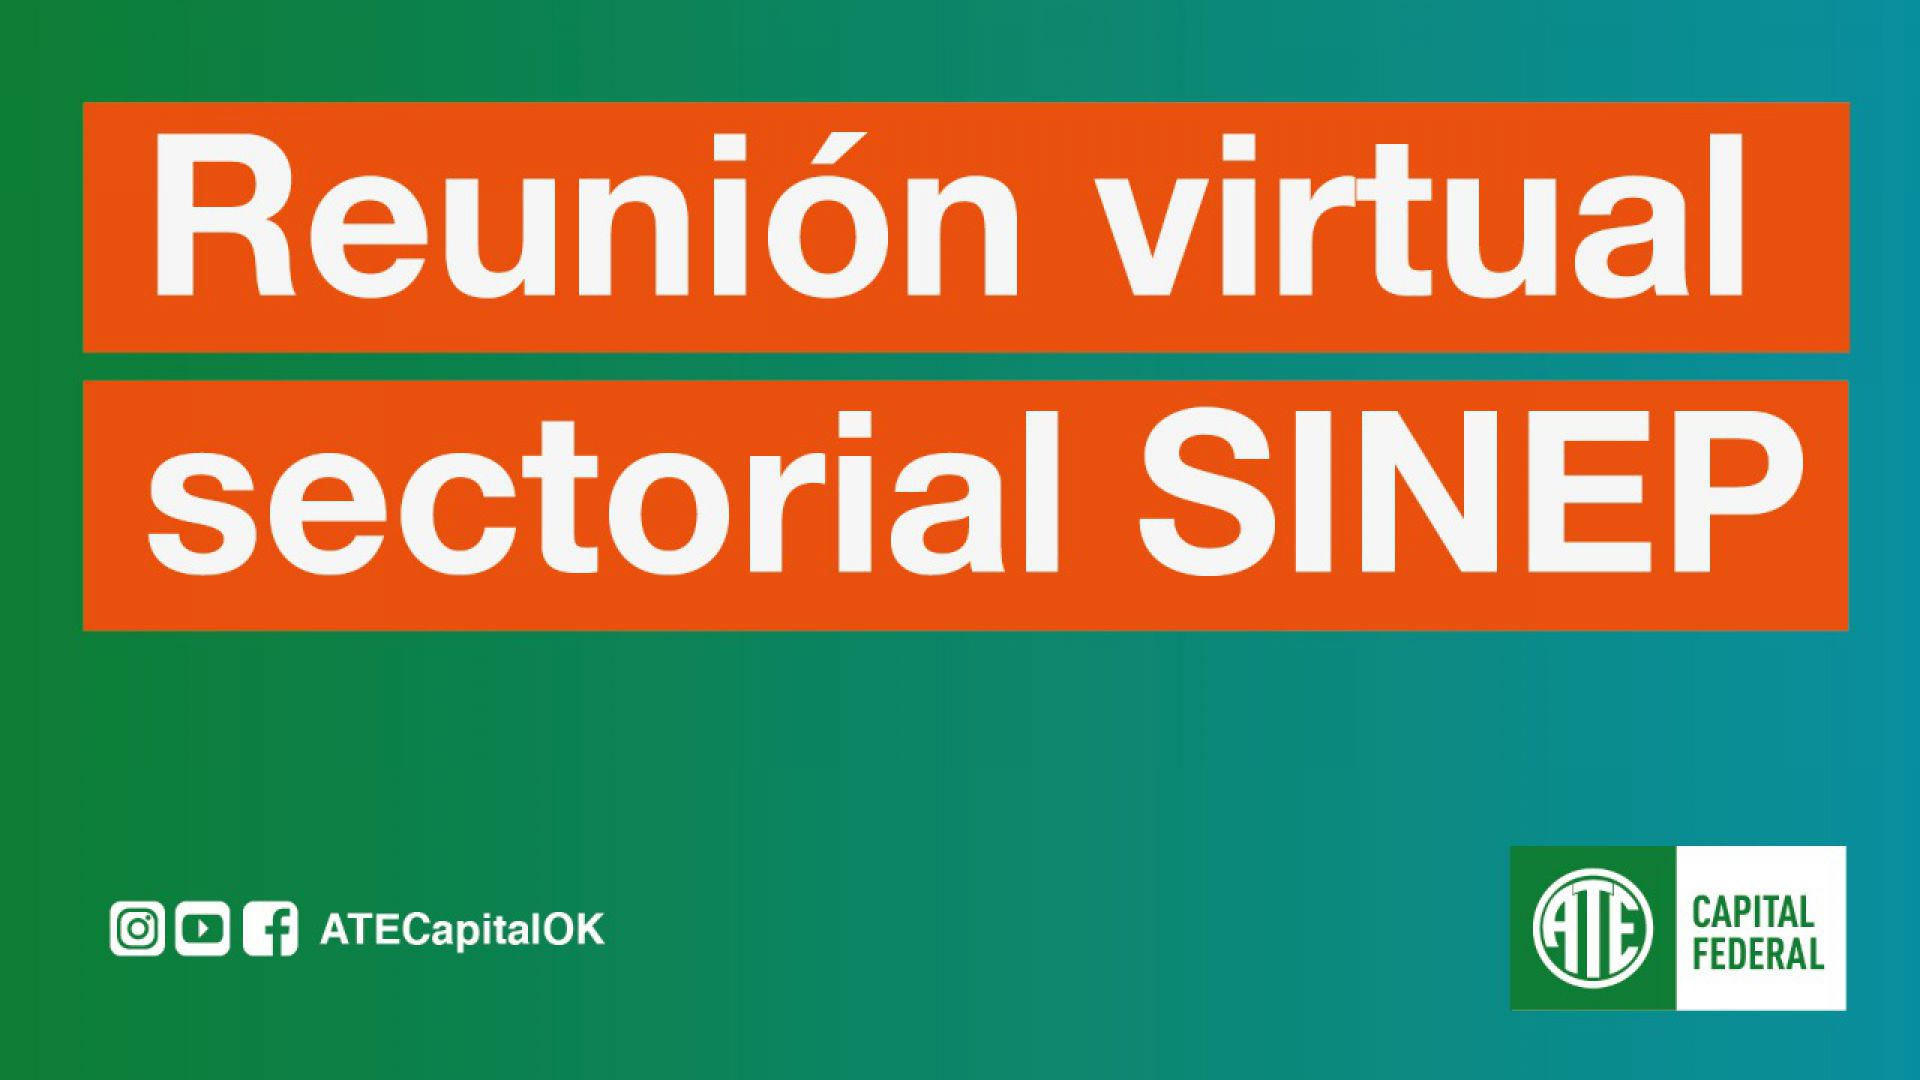 Reunión virtual sectorial SINEP